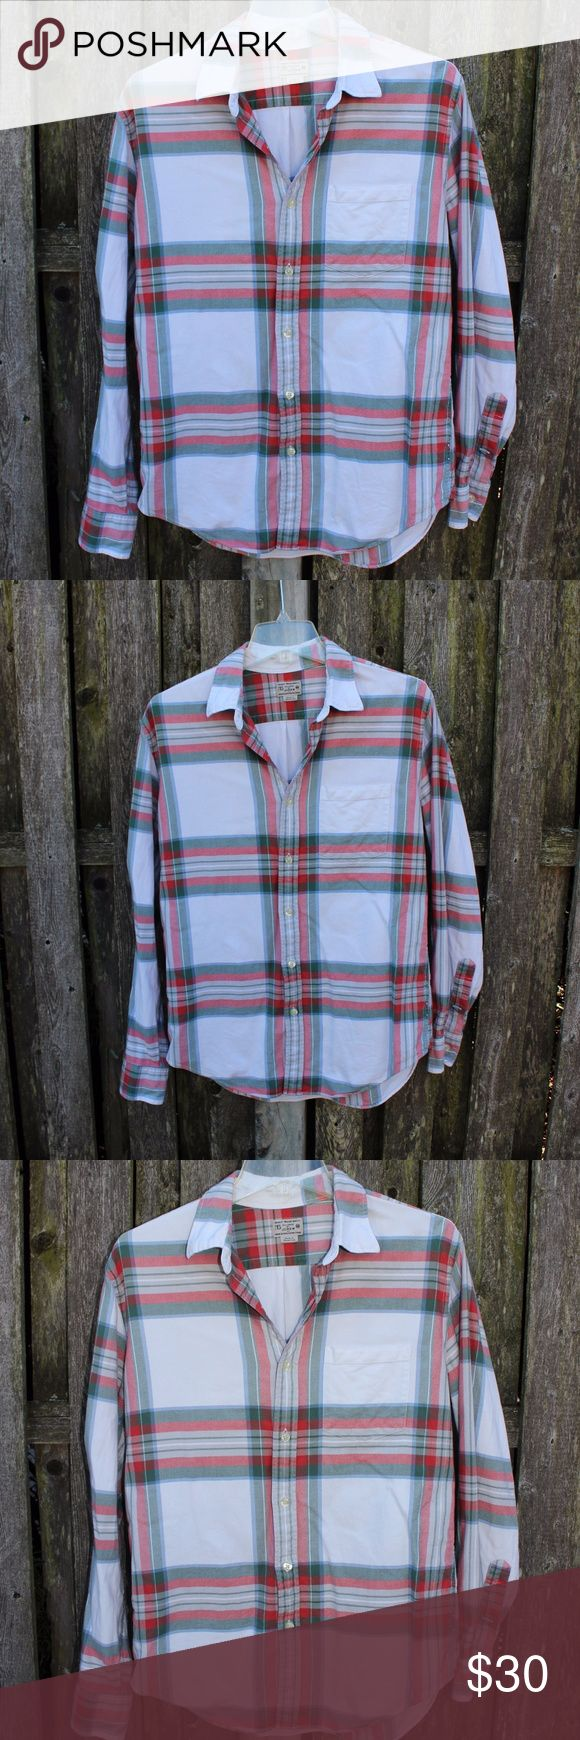 J. Crew Men's White Button-Down J. Crew Factory Men's Button-Down Flannel Type shirt. SO soft and comfortable. In very good condition. White flannel with red and green stripes - very nice for the holiday season!  100% Cotton Shirt Size Medium J. Crew Factory Shirts Casual Button Down Shirts